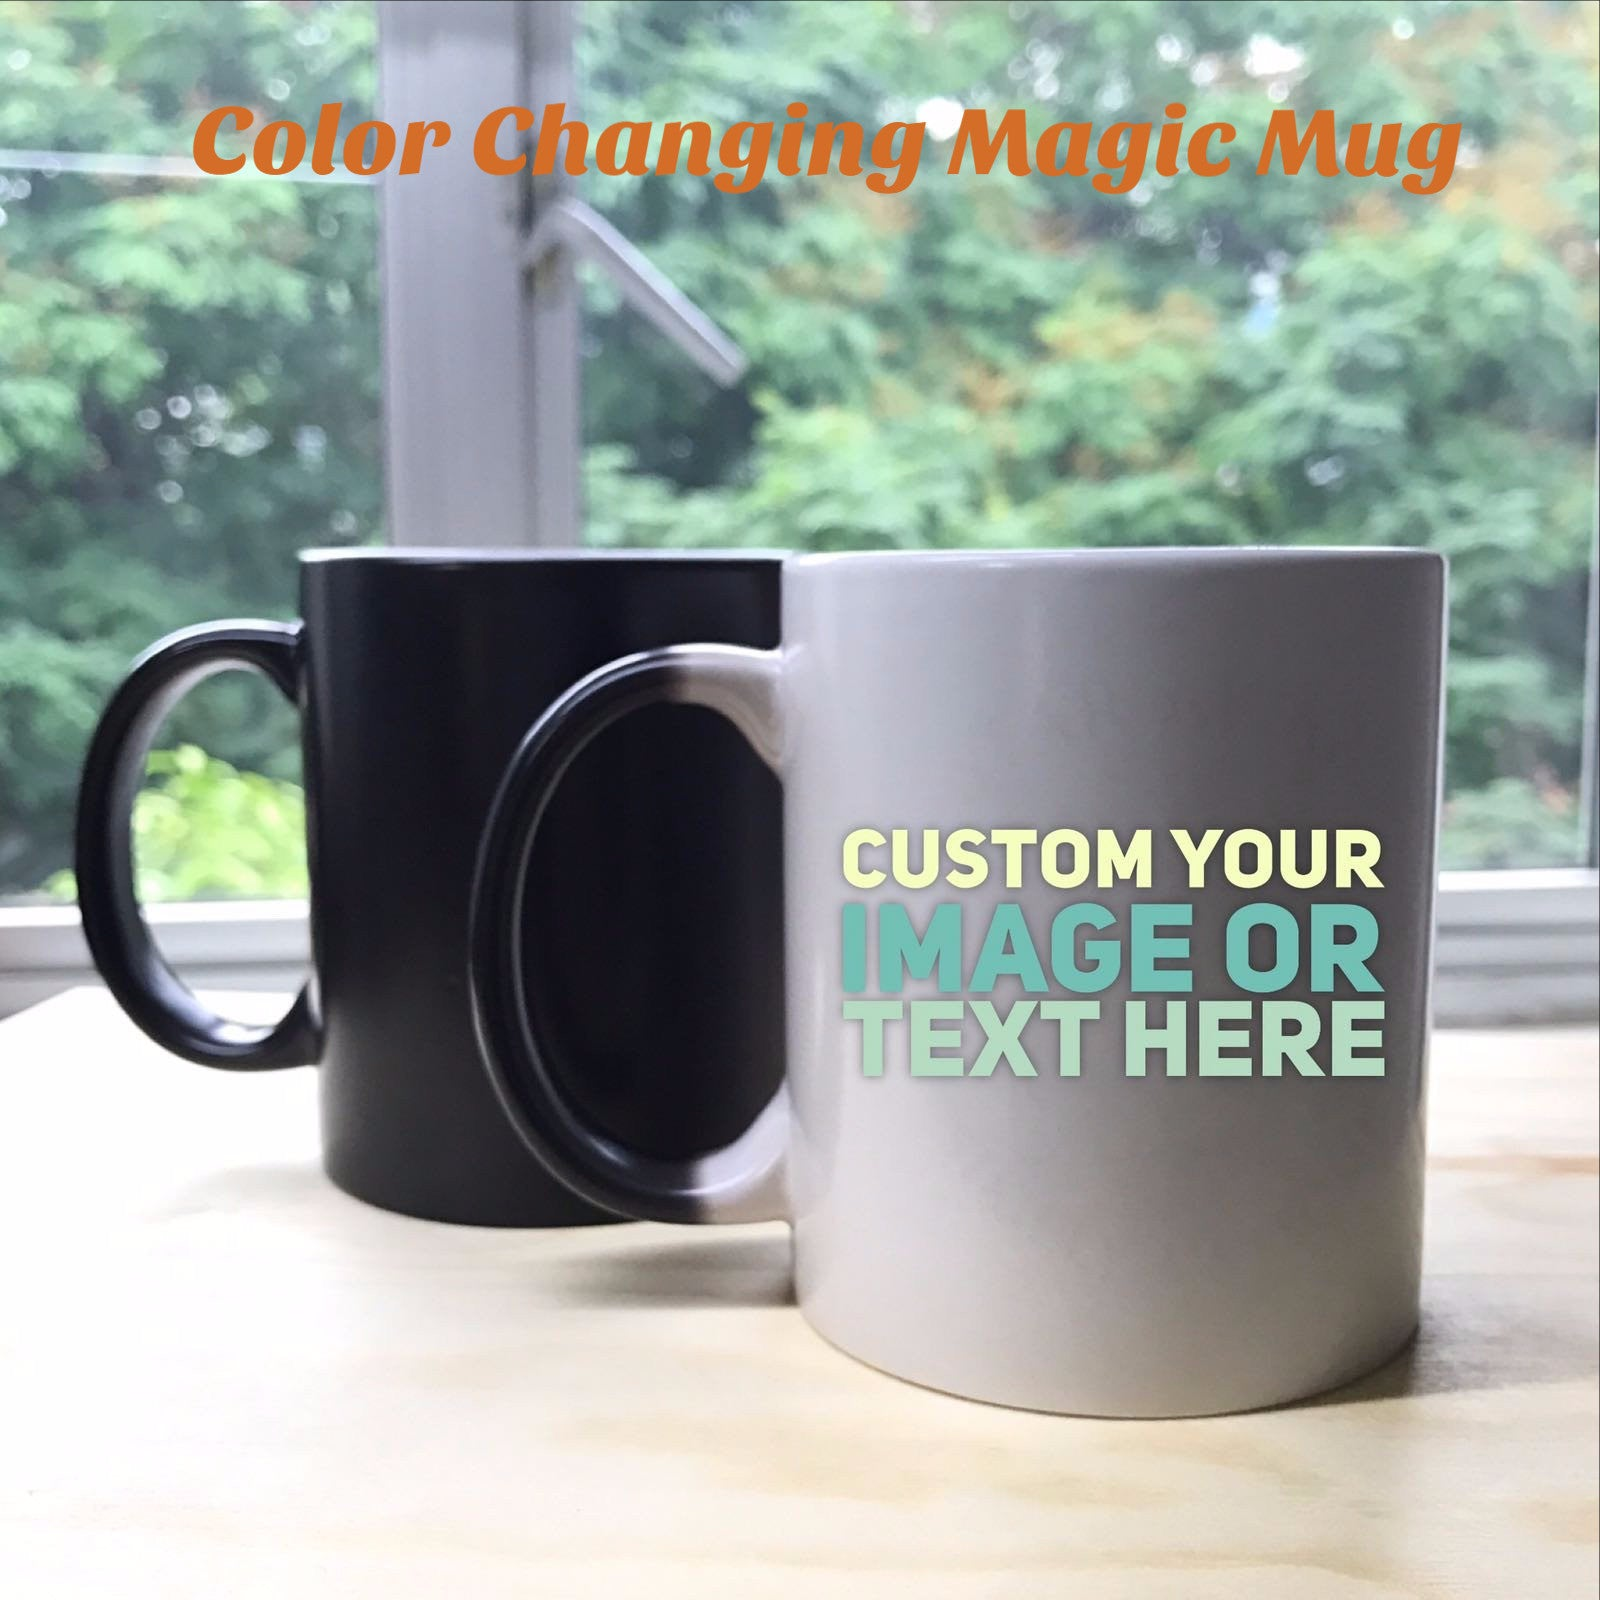 Color Changing Magic Mug